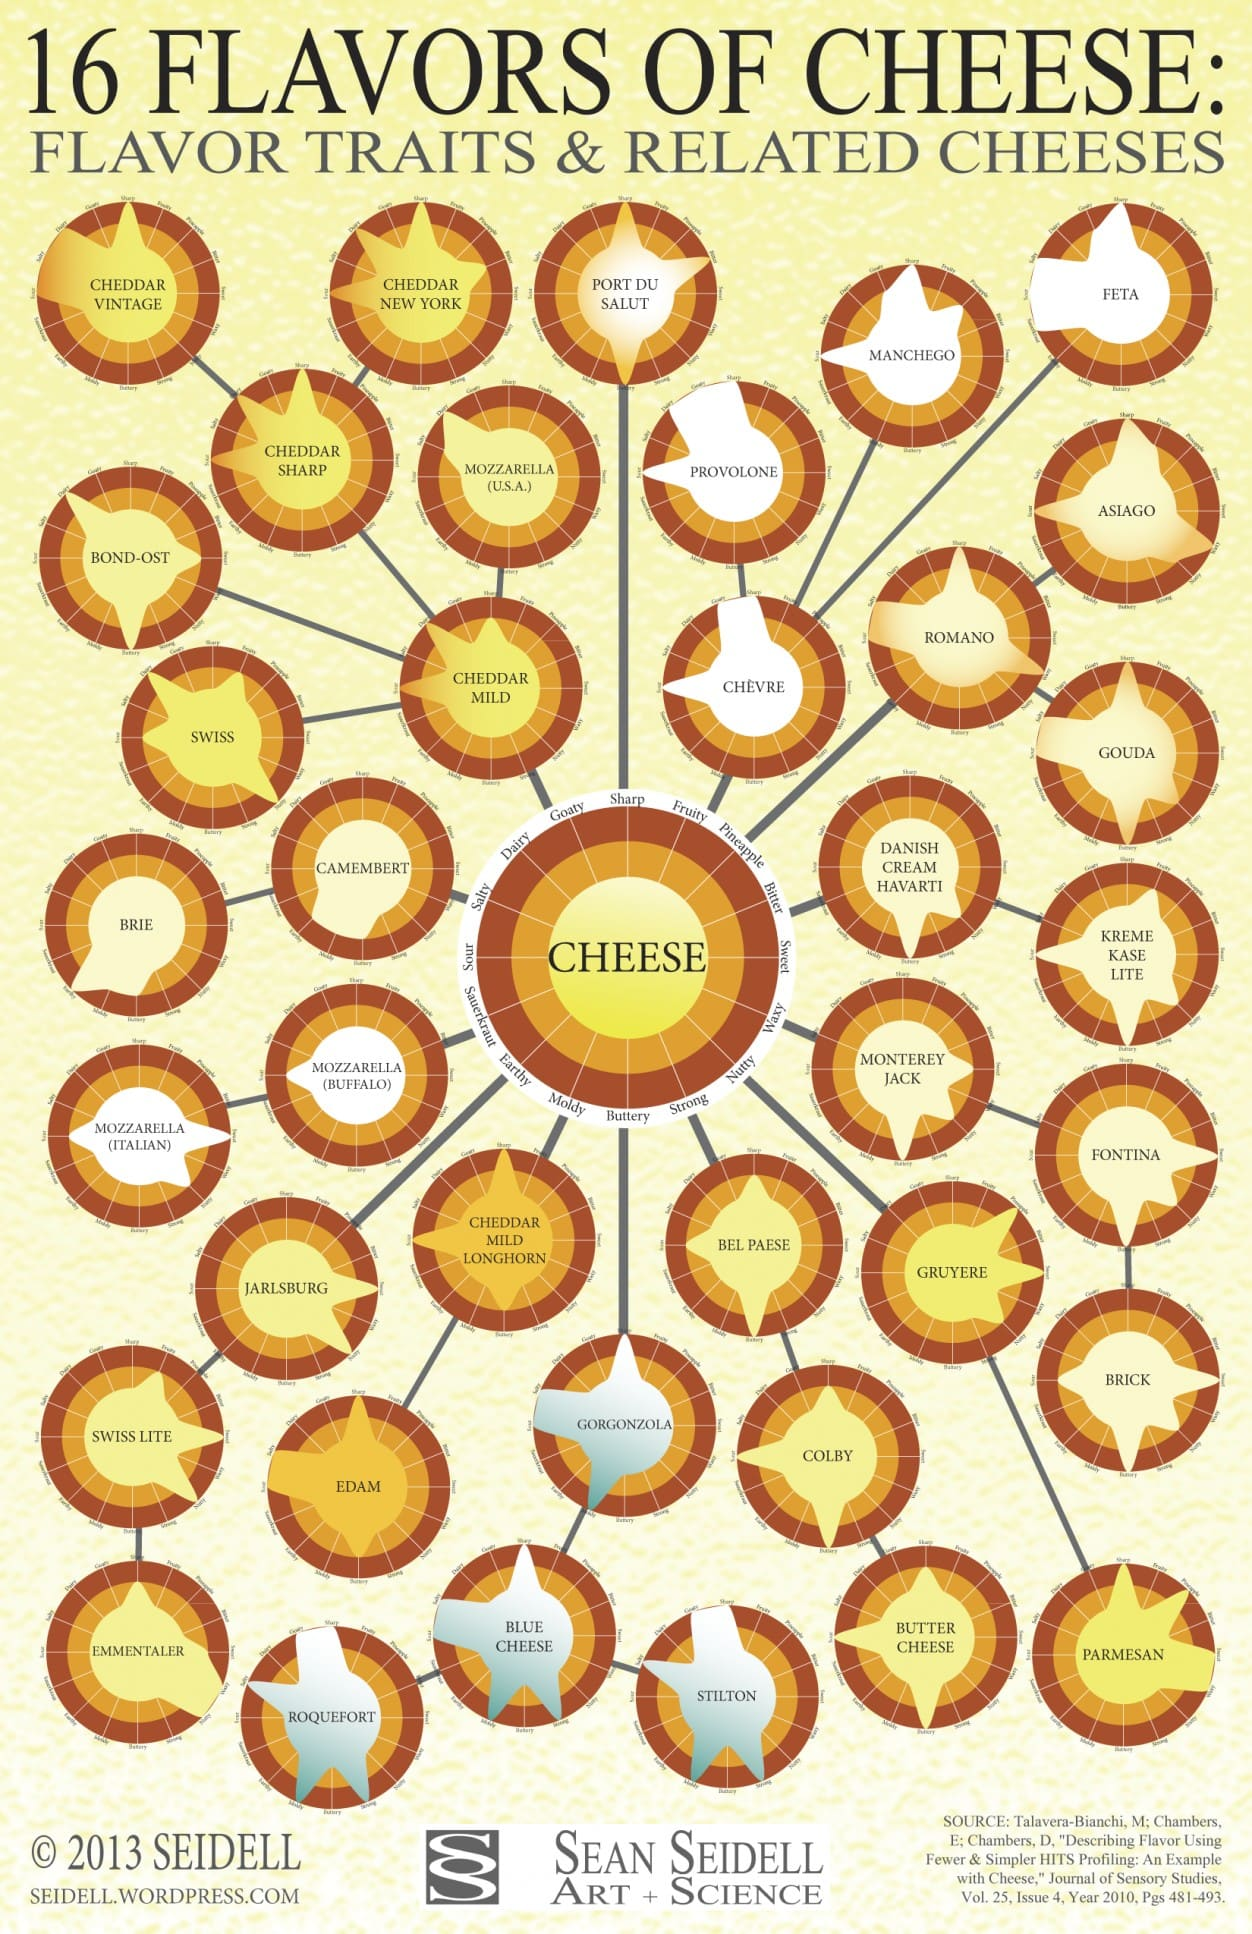 16 Flavors of Cheese Flavor Traits